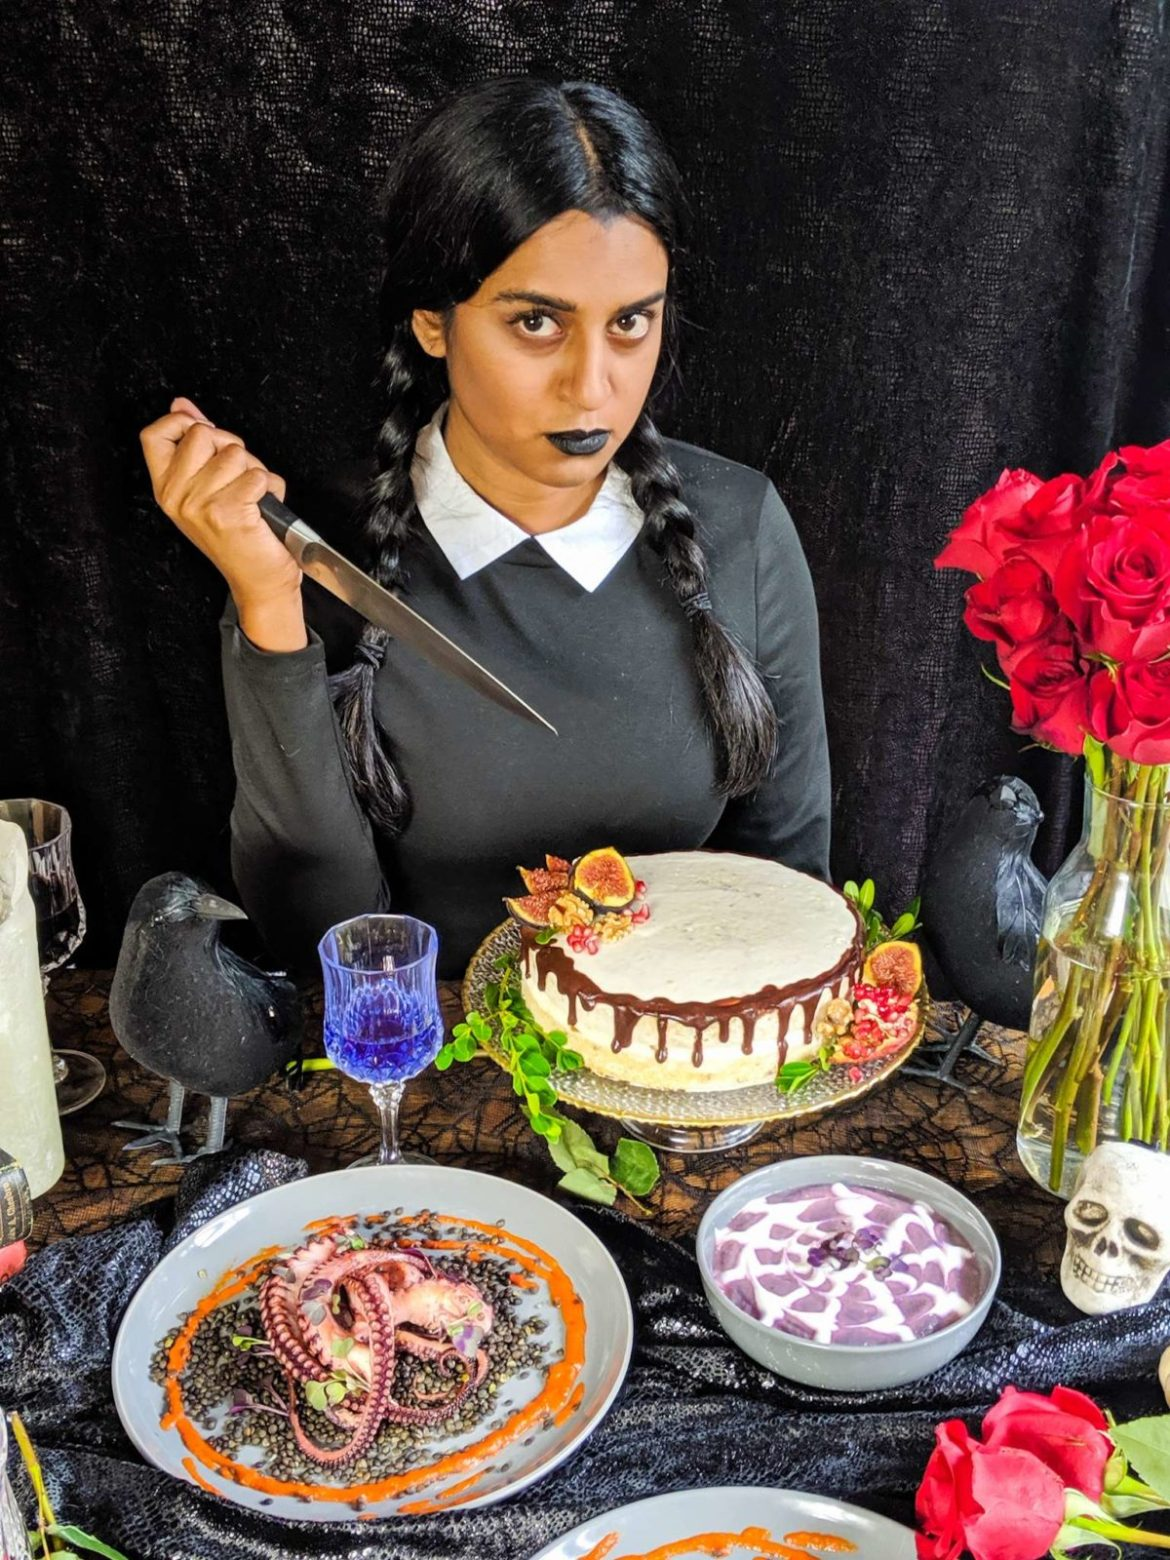 Addams Family Halloween Themed Dinner Party